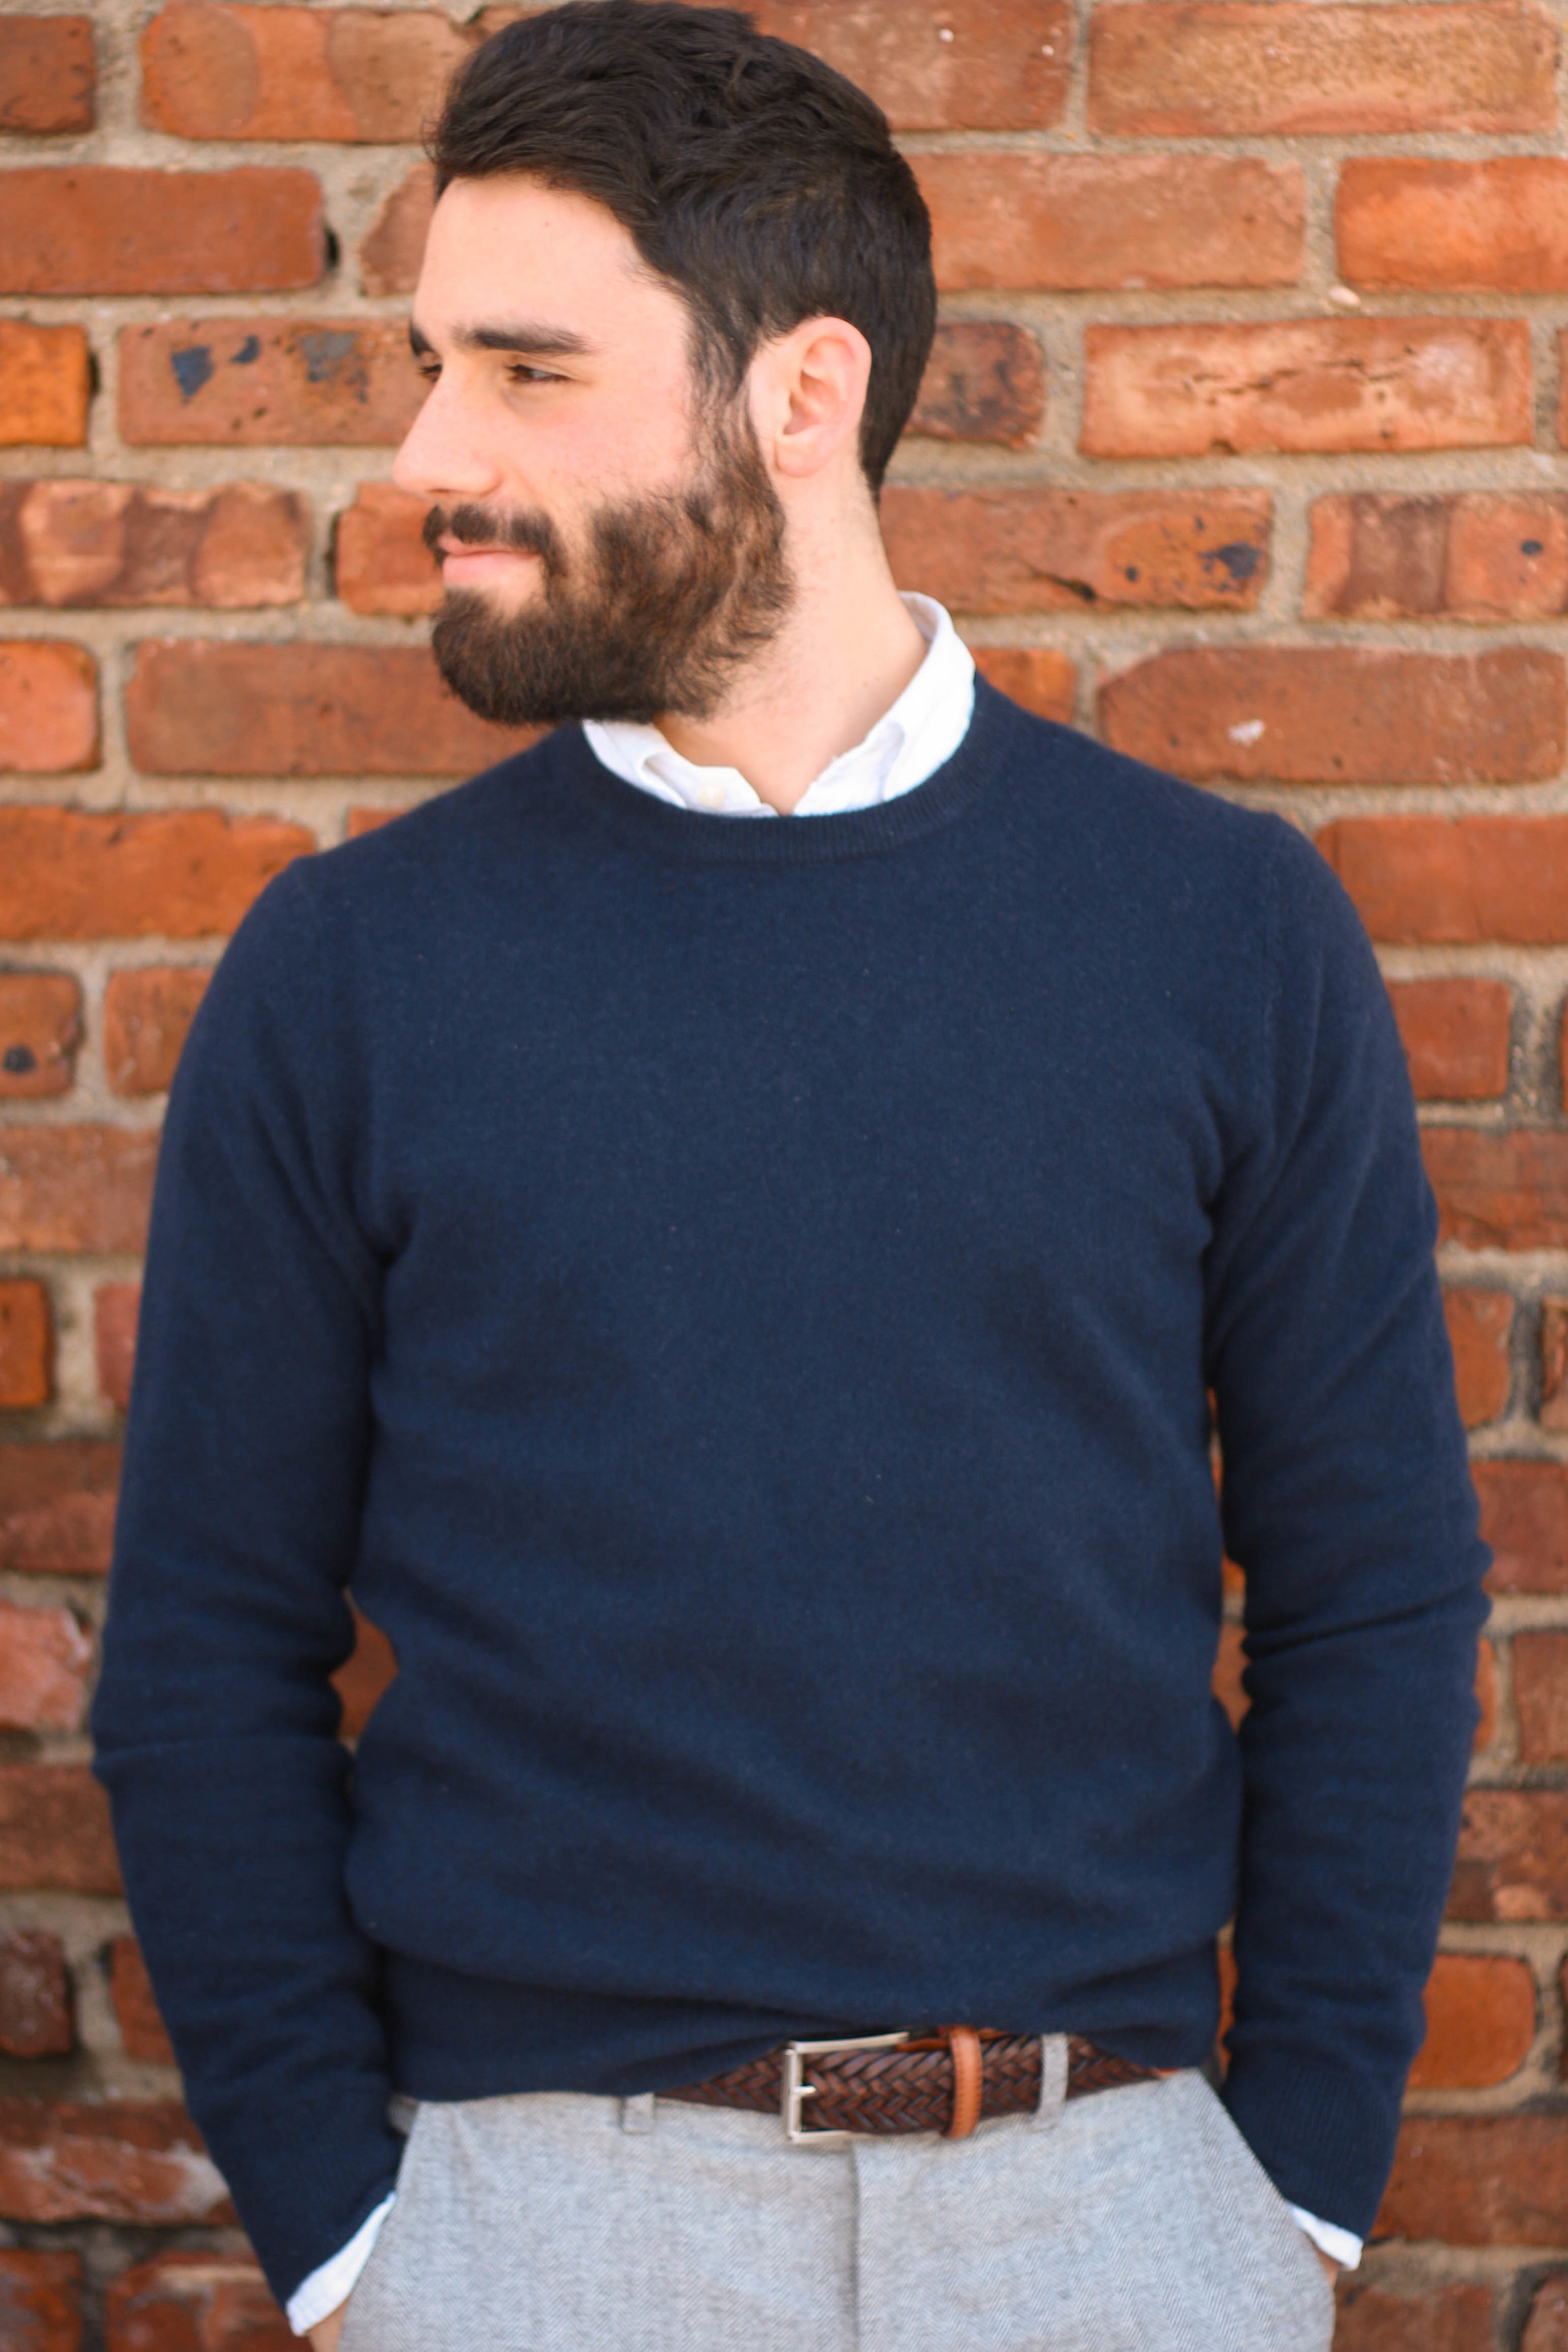 The cashmere sweater is shown here layered with a Ralph Lauren white oxford shirt and will blend flannel trousers from Gap